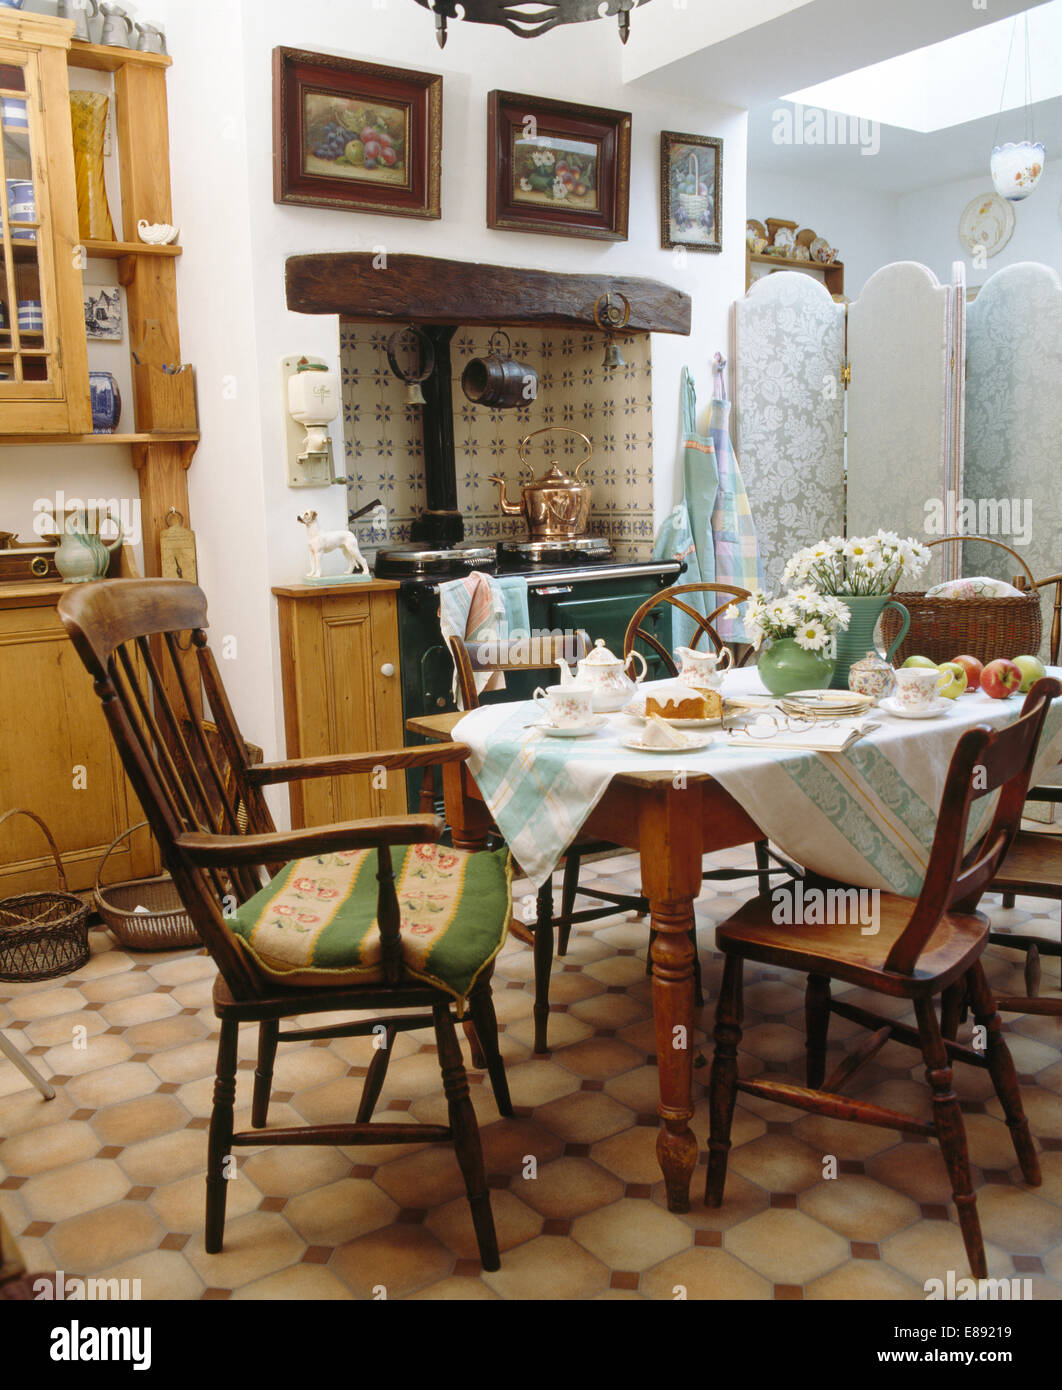 Traditional Furniture Kitchens Green Imágenes De Stock & Traditional ...